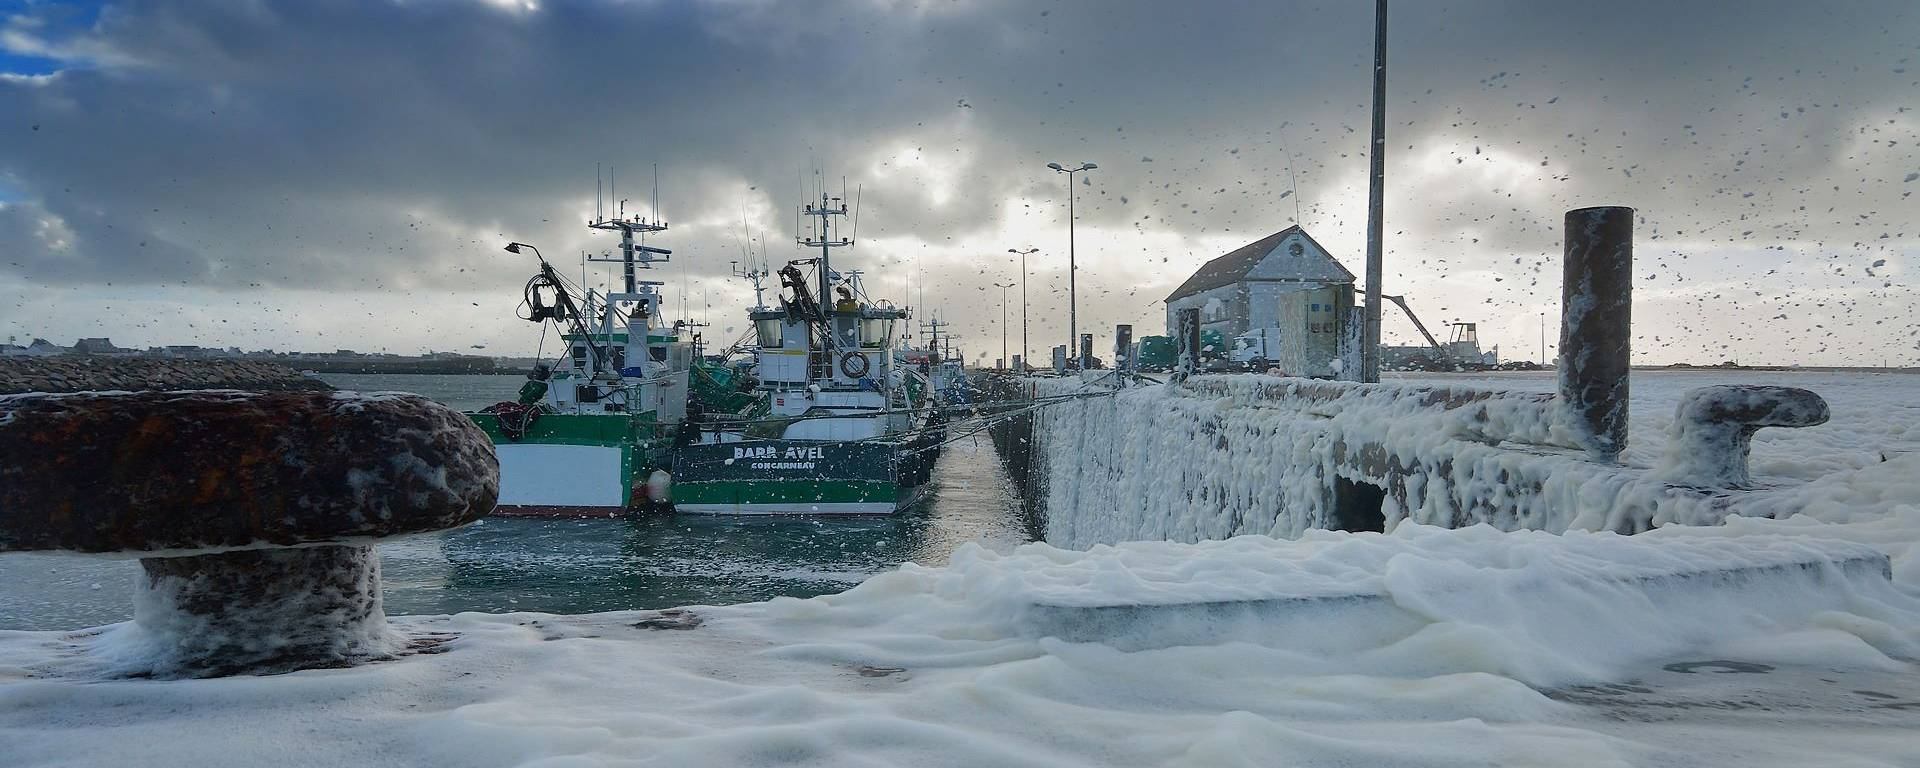 'Snow' in Saint-Guénolé - a stormy day in Pays Bigouden @Nonos